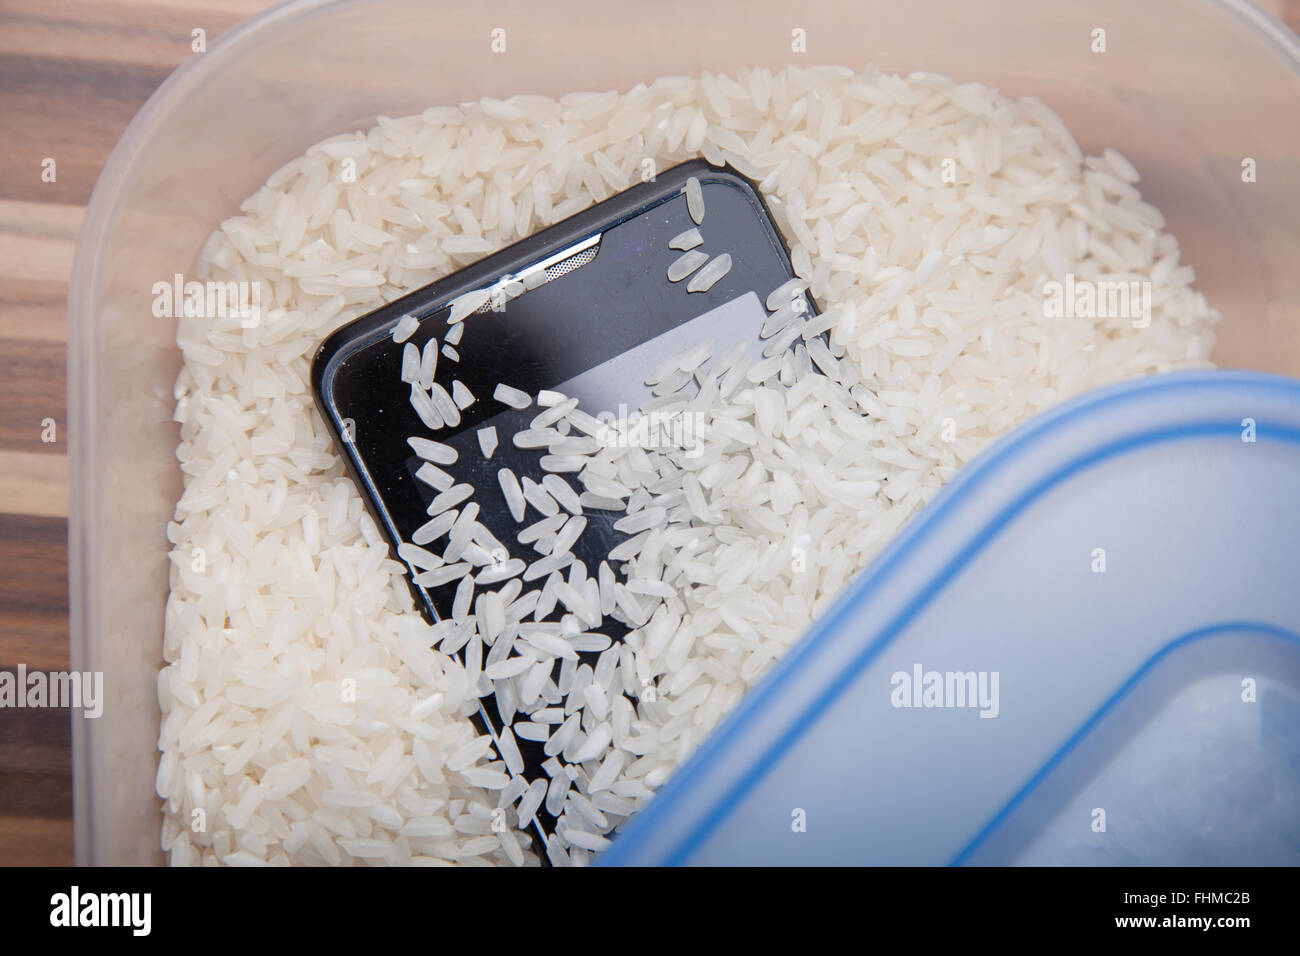 Using uncooked rice to draw out moisture from a mobile phone. - Stock Image